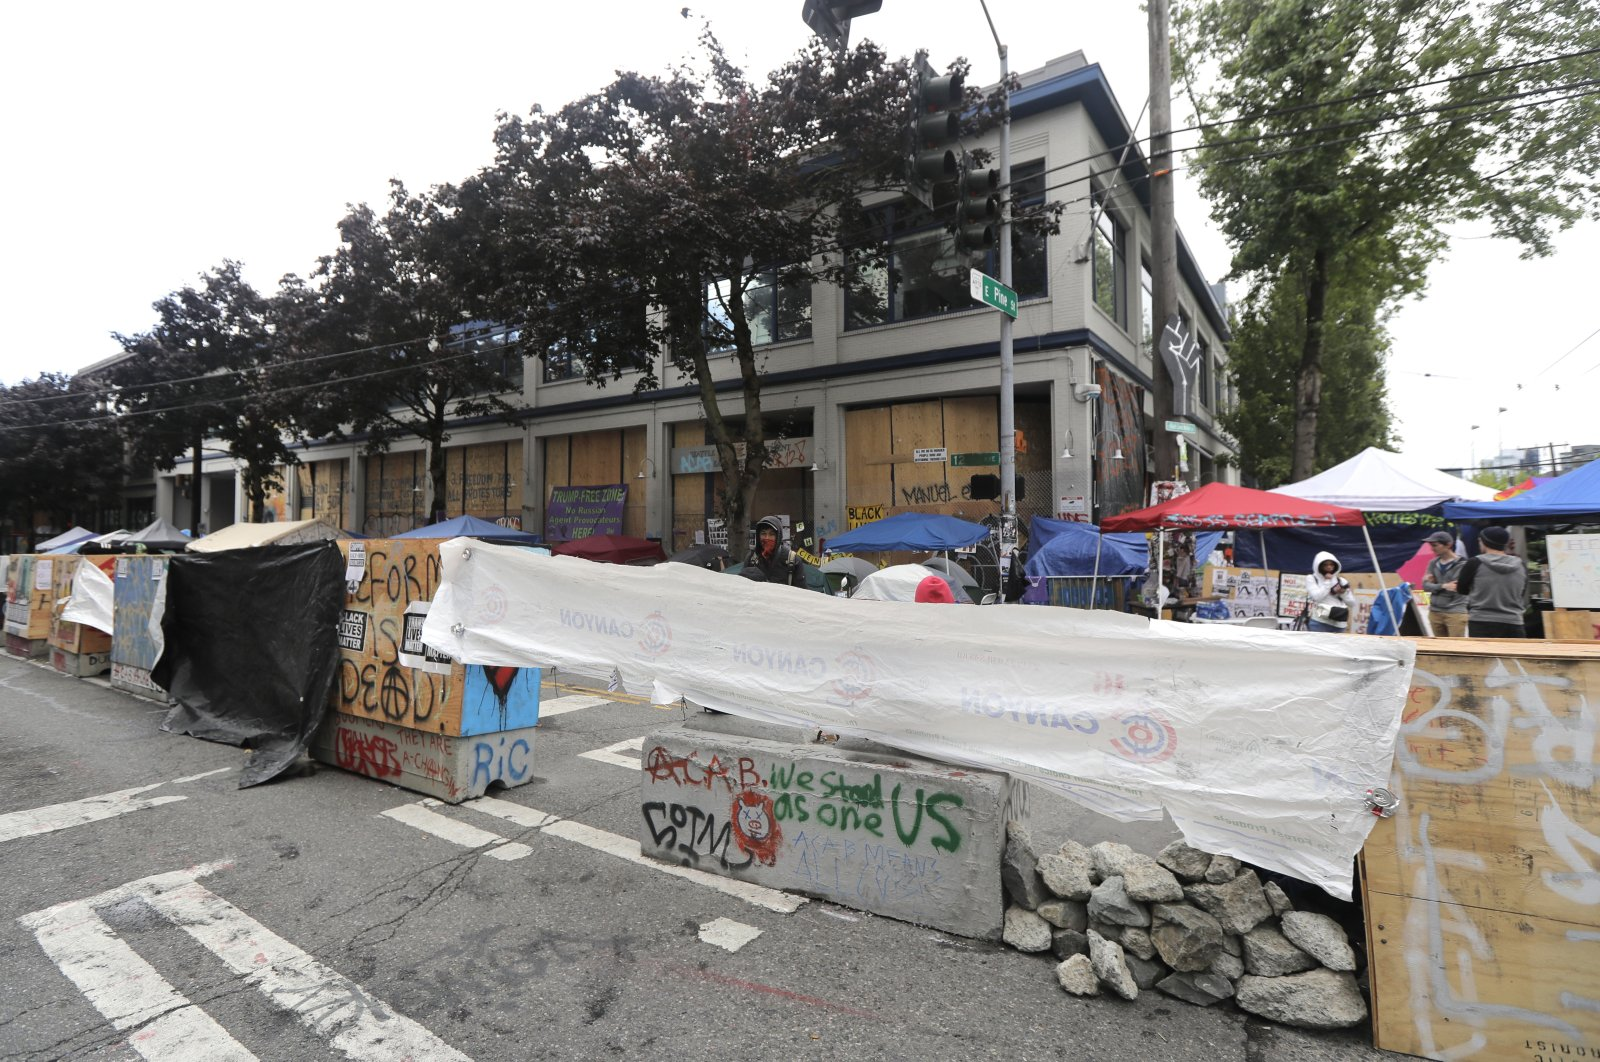 Cement barricades are fortified with chunks of concrete and tarps in front of the Seattle Police Department East Precinct building at the Capitol Hill Occupied Protest zone in Seattle, Washington, U.S., June 30, 2020. (AP Photo)